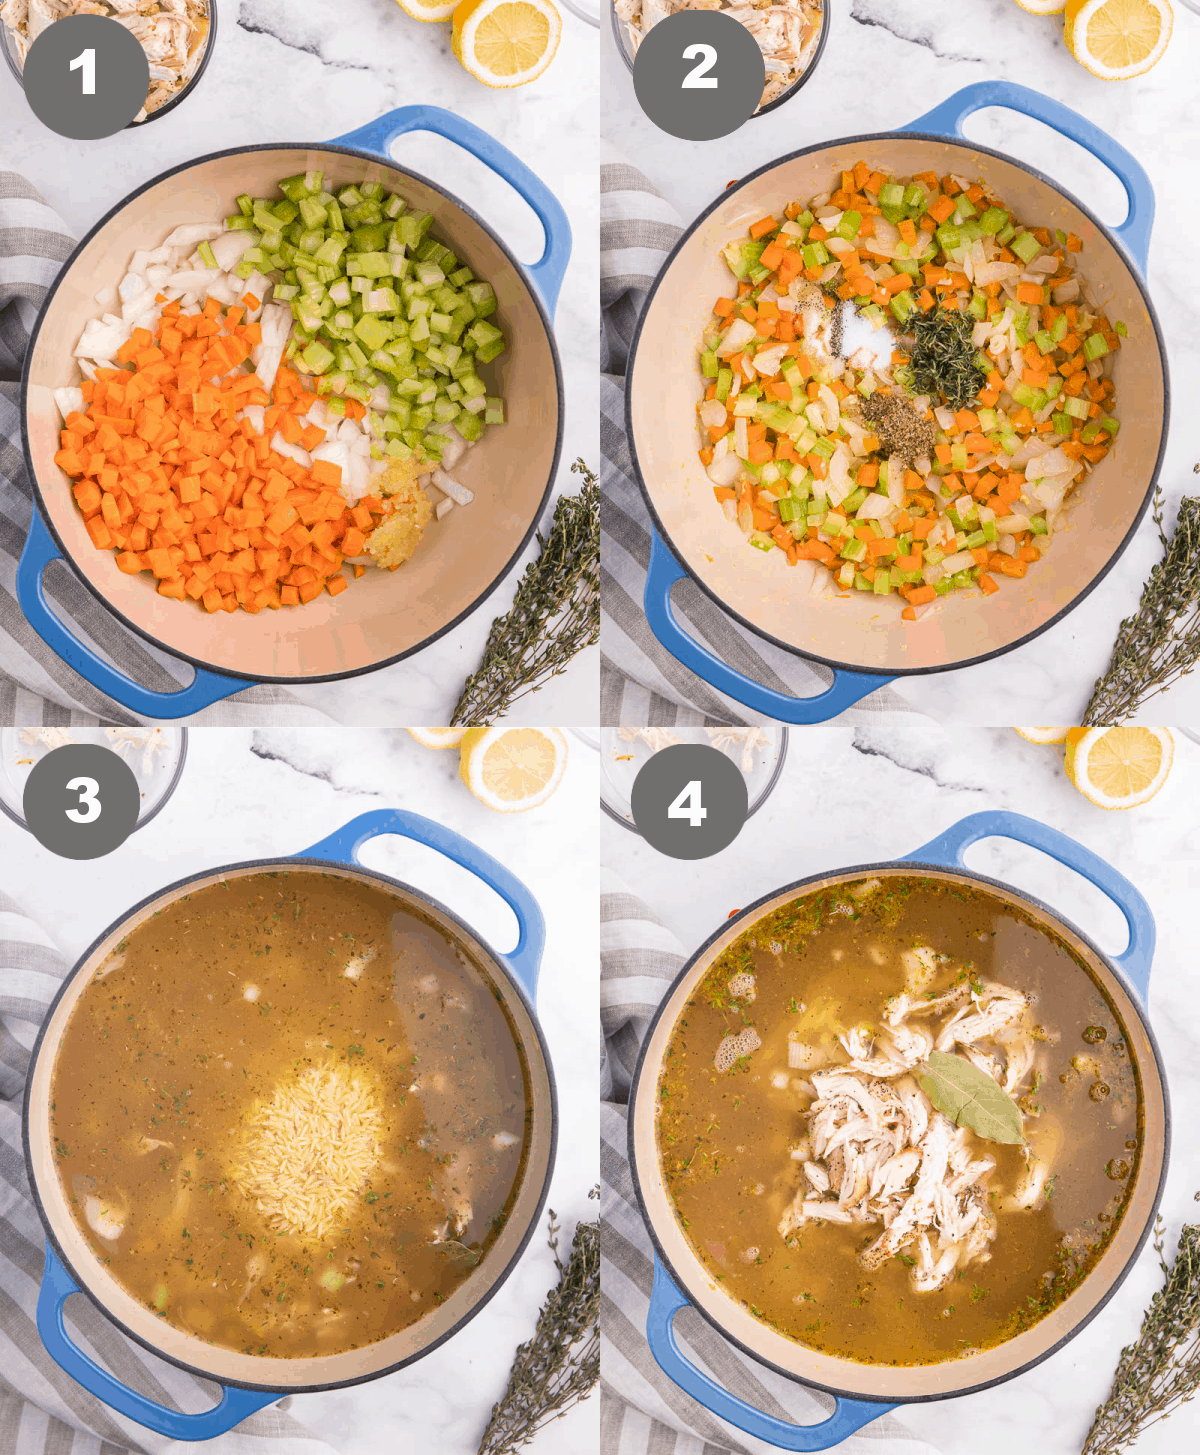 Four process photos. First one, vegetables added to the cast iron pot. Second one, herbs added to the pot. Third one, chicken stock and pasta added to the pot. Fourth one, cooked chicken added to the pot.